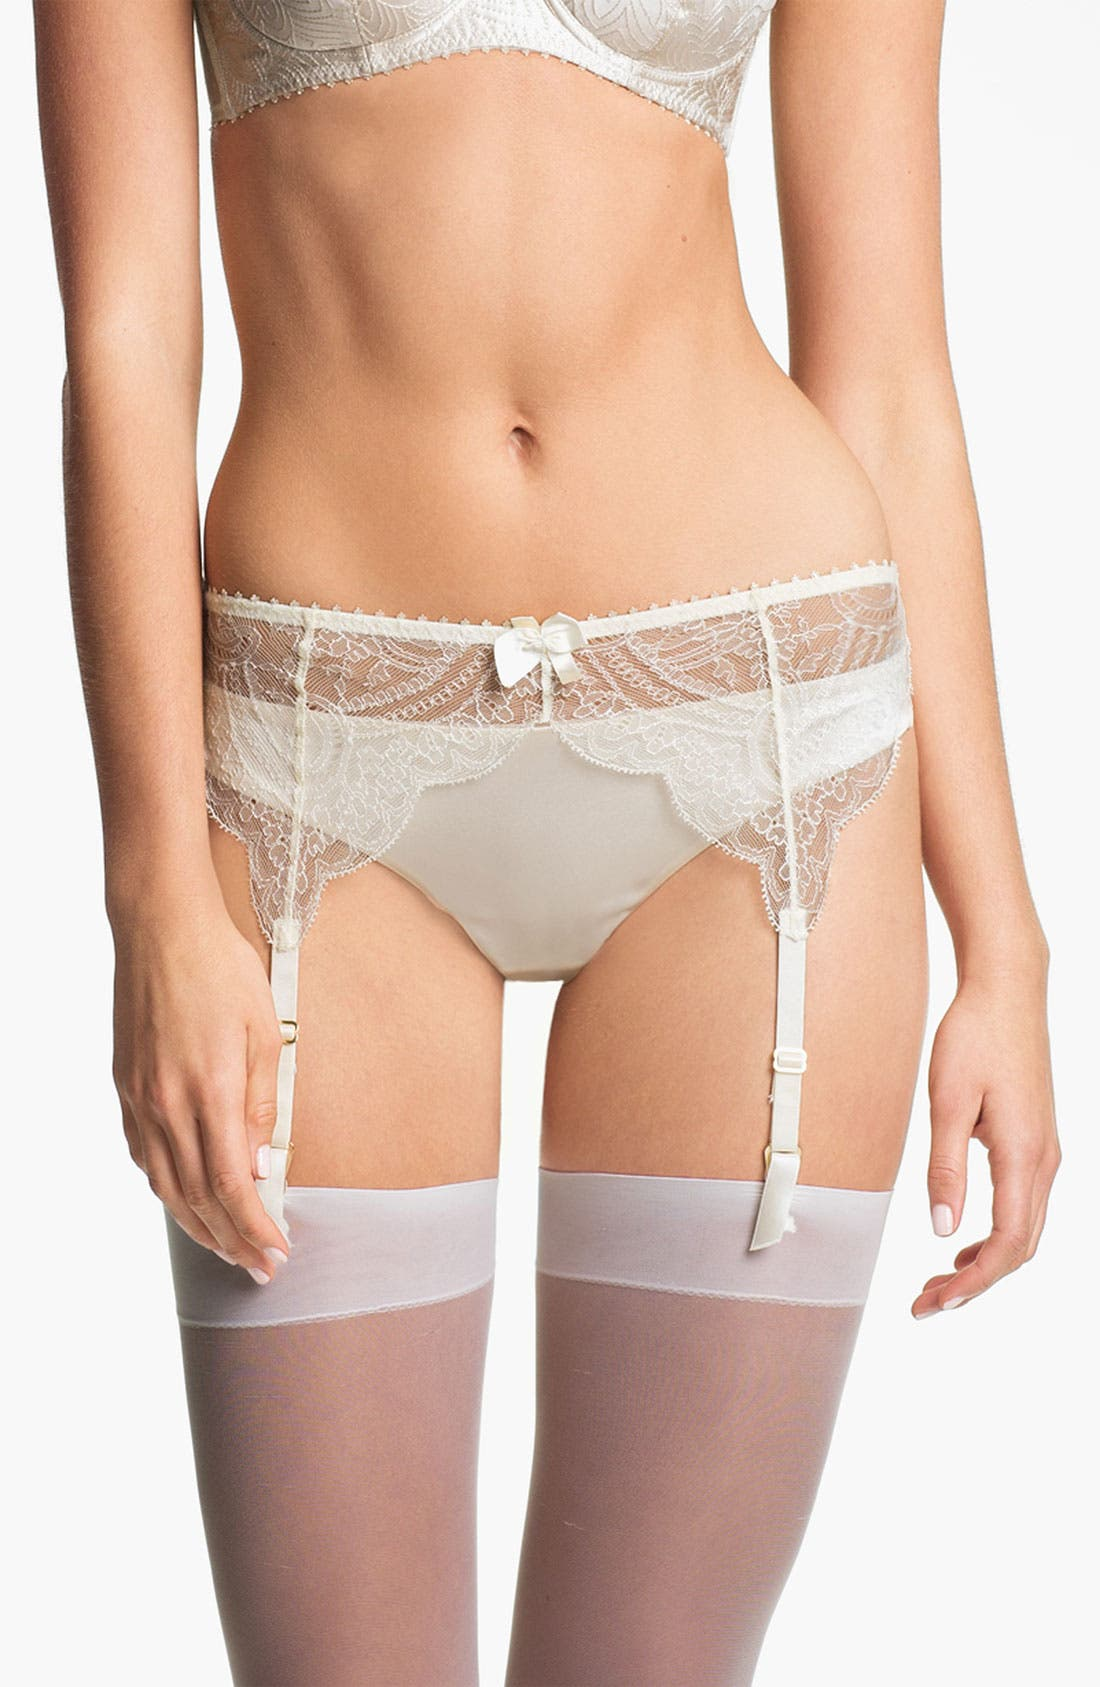 Alternate Image 1 Selected - Stella McCartney 'Erin Wishing' Thong